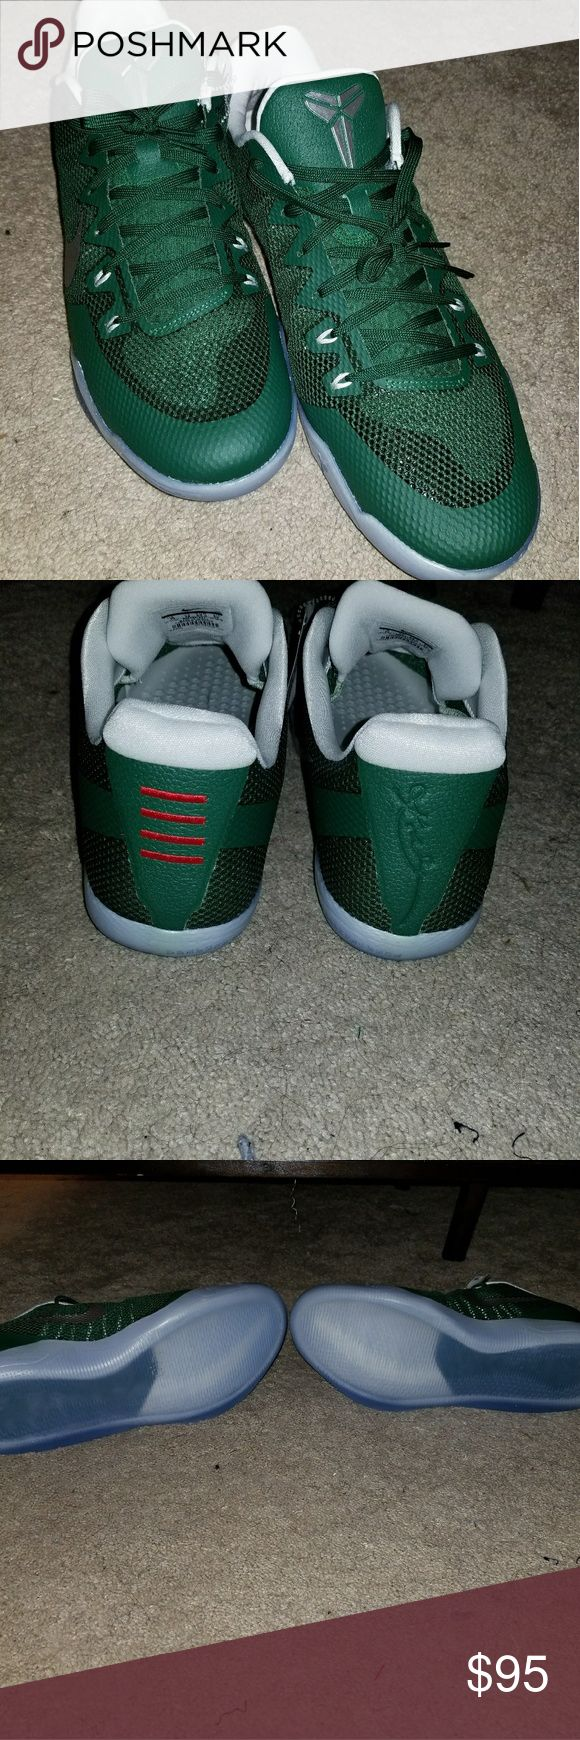 Nike Kobe 11 low top Brand new,  never worn Kobe 11 low top in Celtic green with silver swoosh. Nike Shoes Athletic Shoes